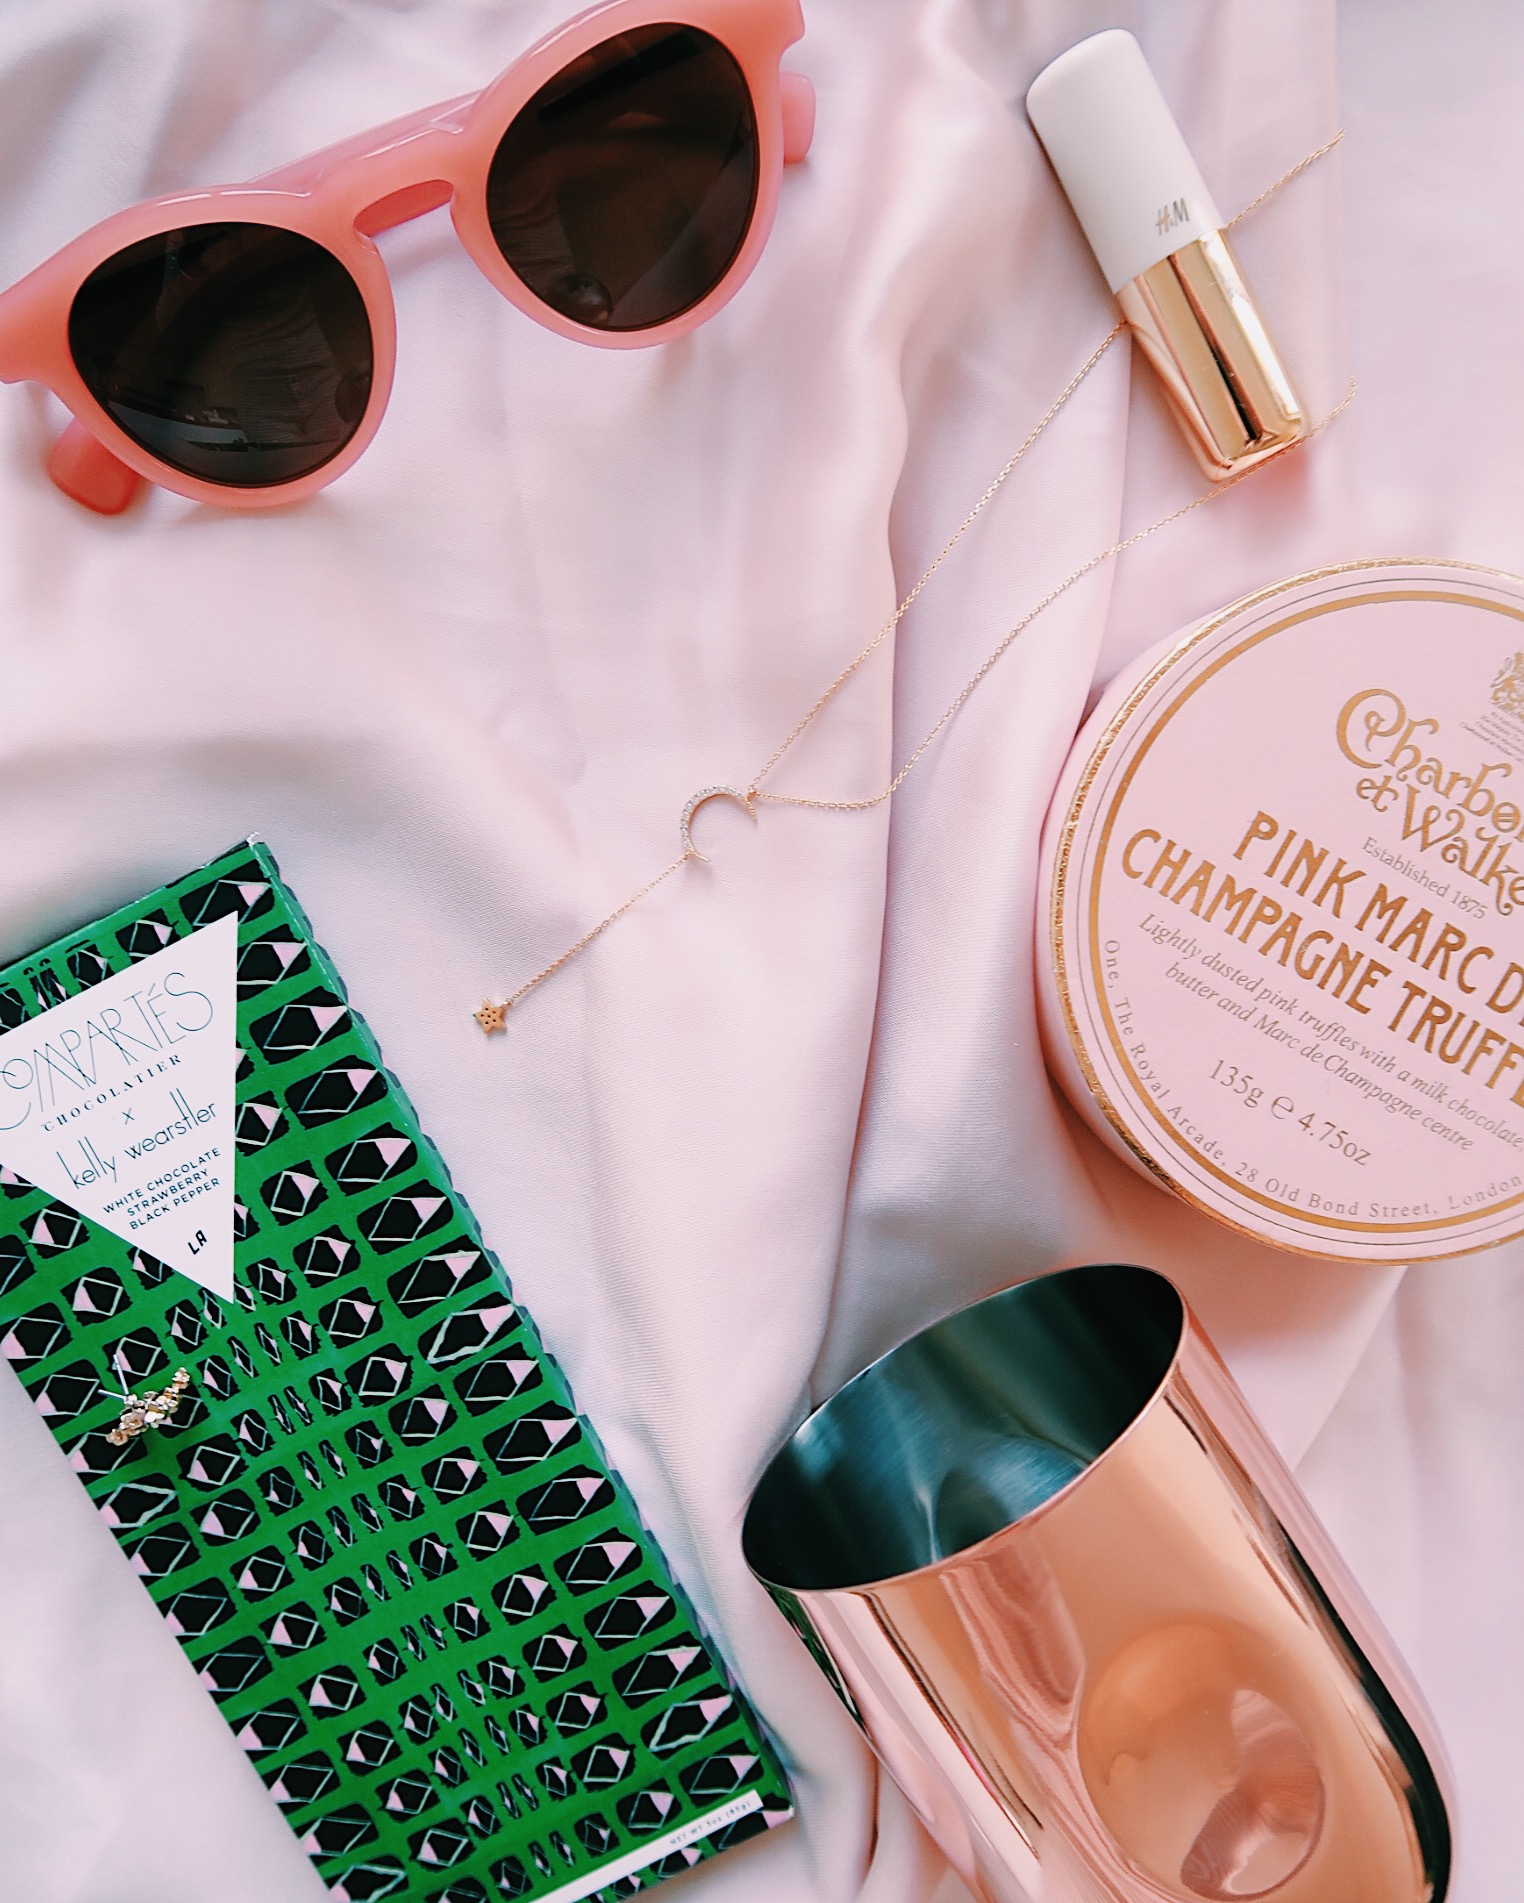 Latest obsessions: Tom Dixon barware, Compartés x Kelly Wearstler chocolate, Charbonnel et Walker truffles, J.Crew sunglasses, H&M beauty and celestial jewelry | Sundays and Somedays